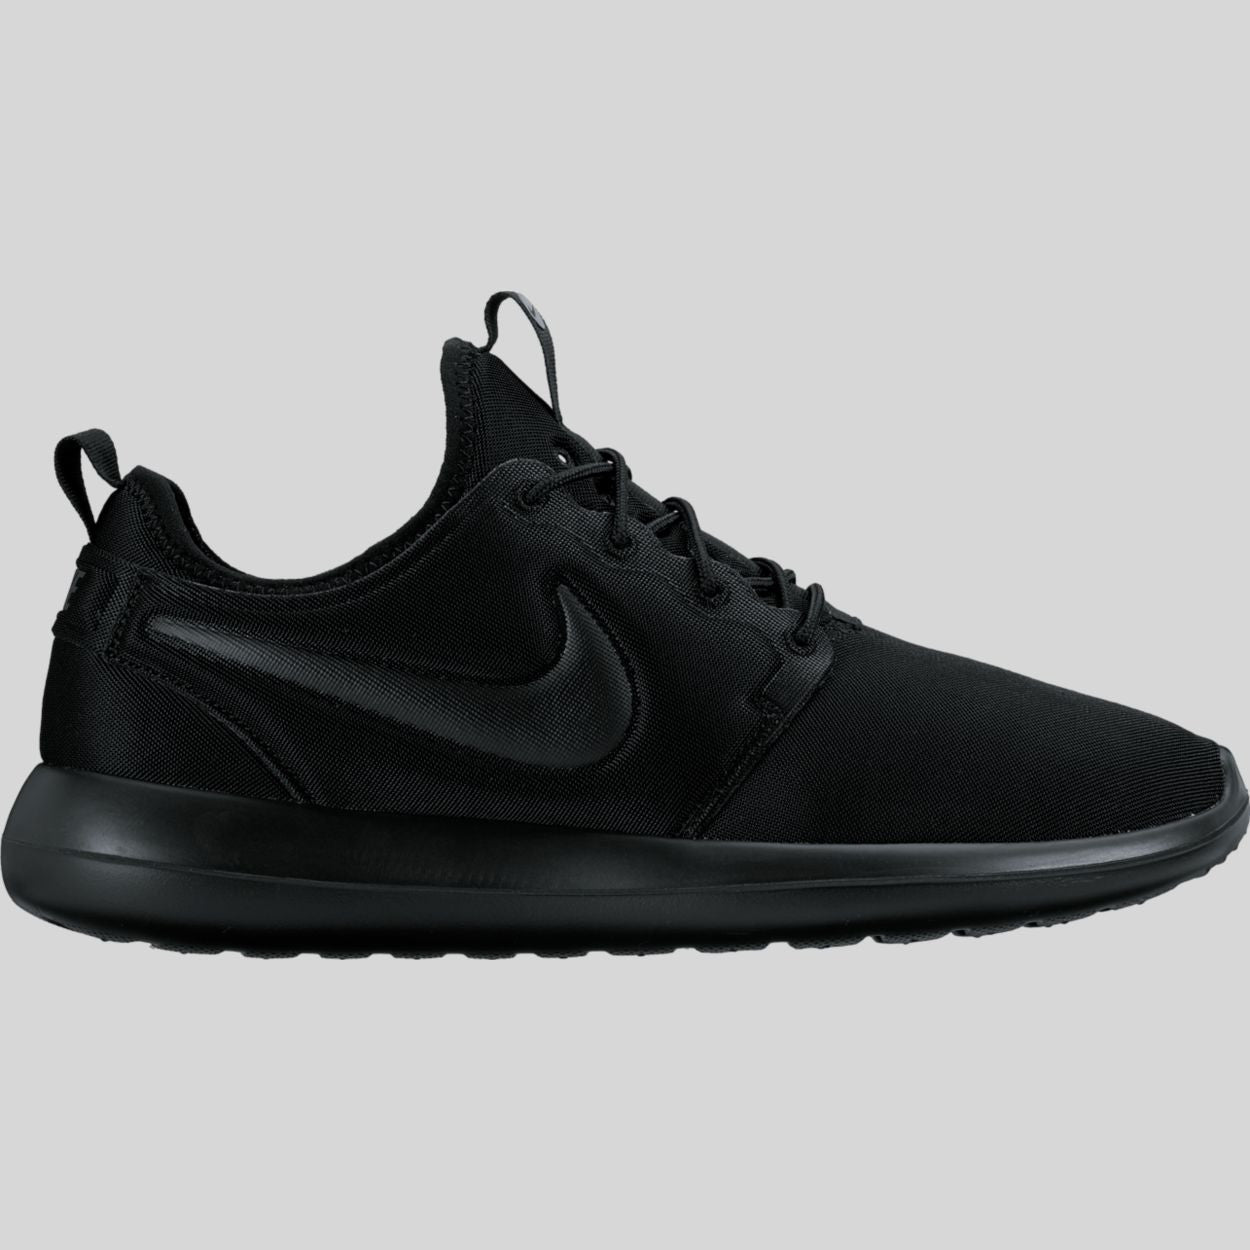 separation shoes 0a933 afd41 Traditional Appeal On The New Nike Roshe Two Leather Kicks On Fire